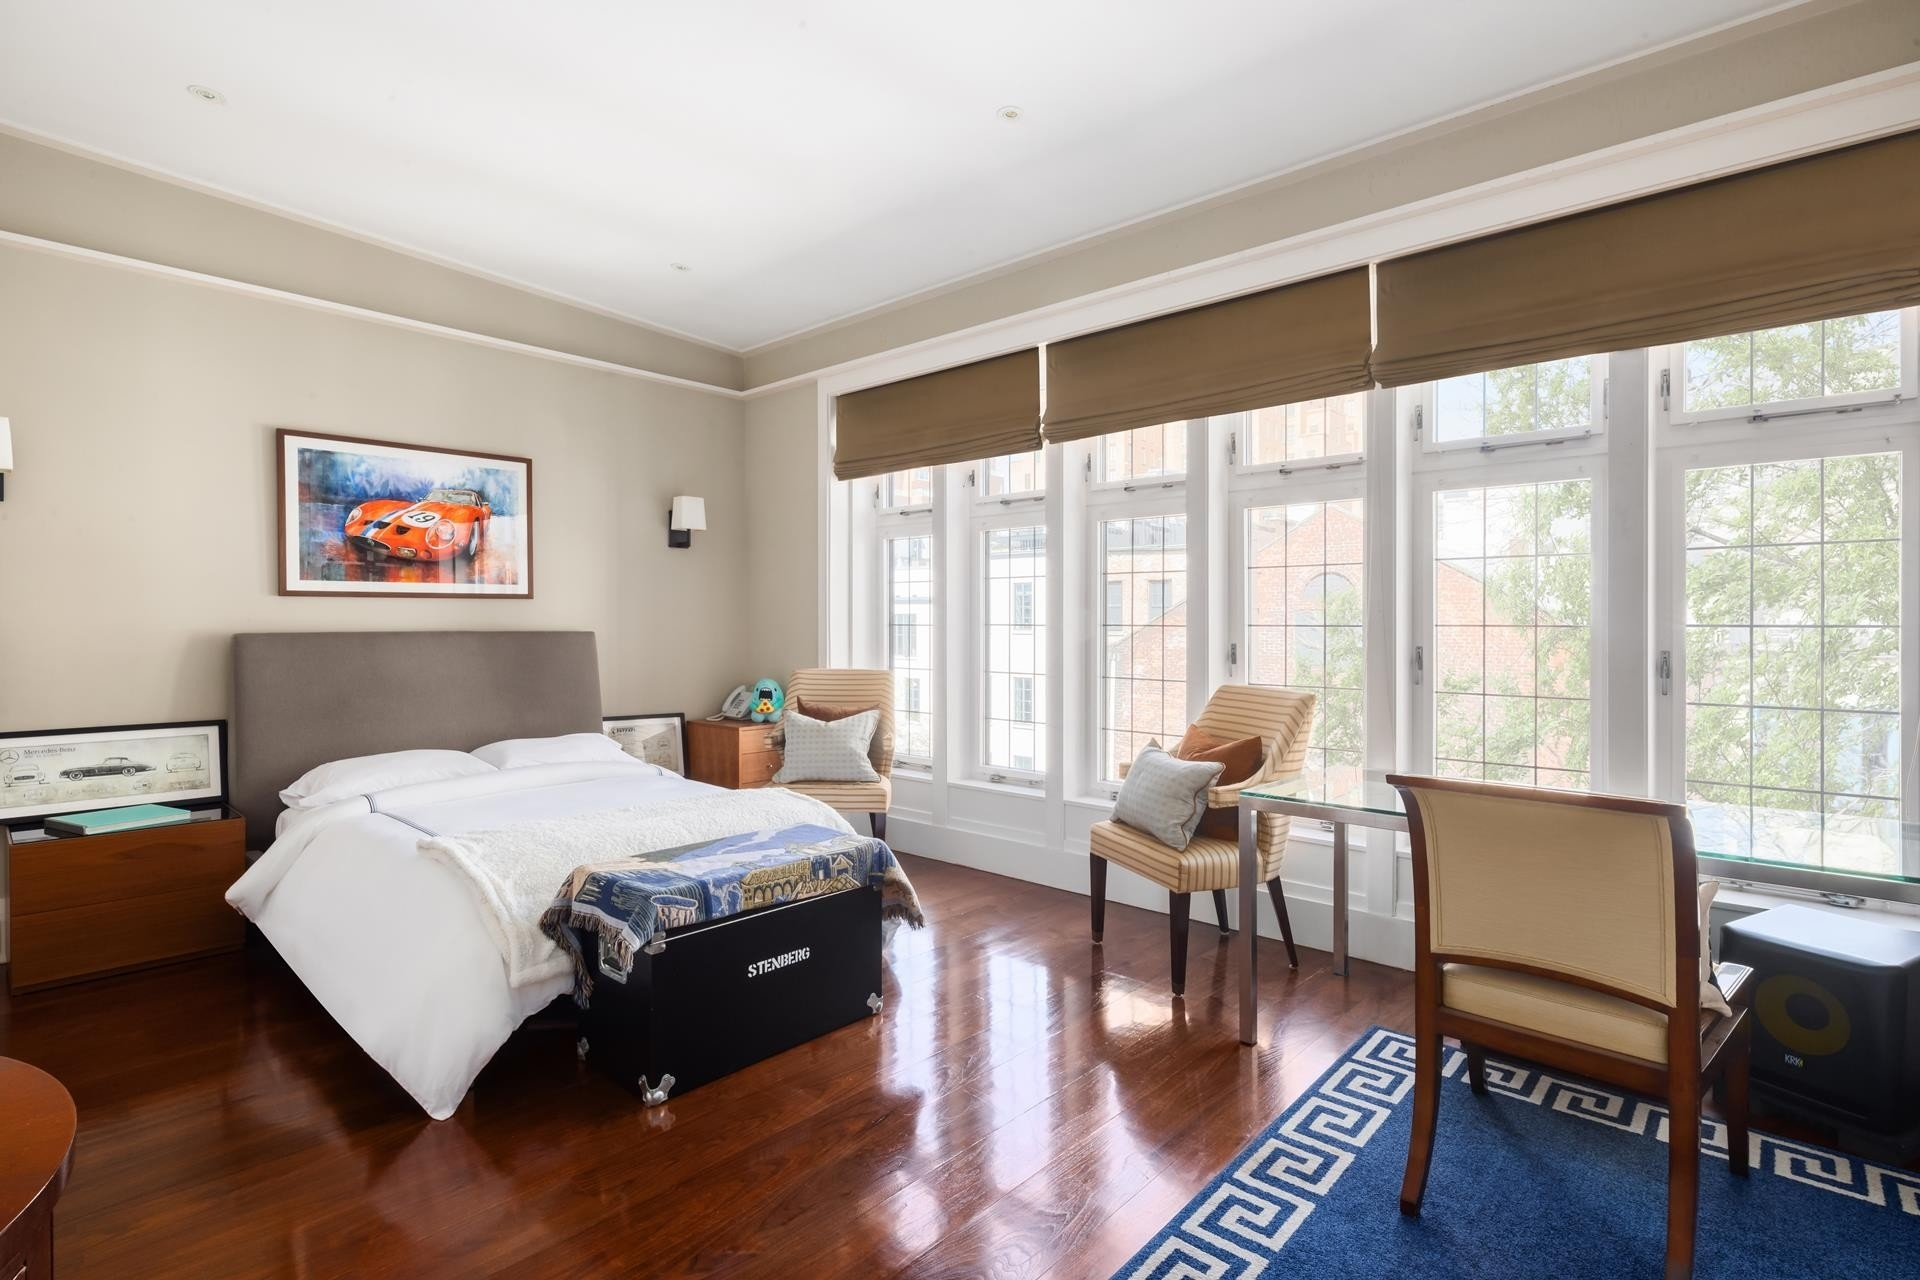 18. Single Family Townhouse for Sale at 159 E 61ST ST , TOWNHOUSE Lenox Hill, New York, NY 10065